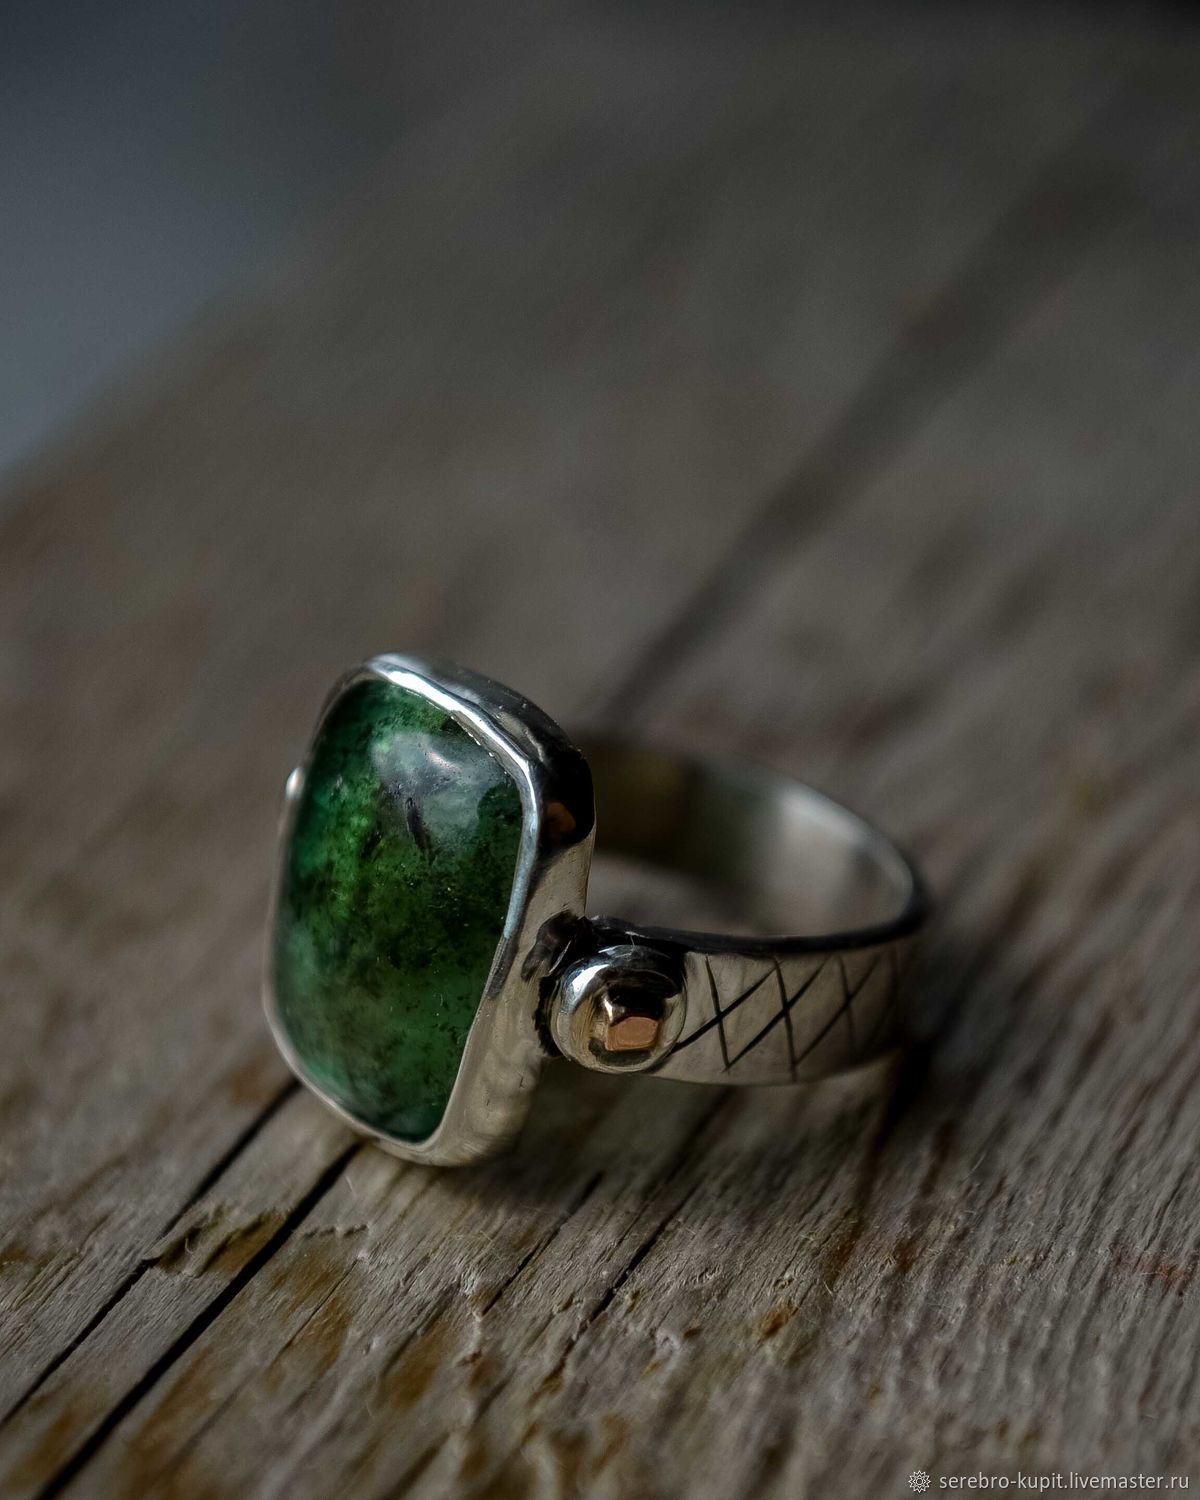 Silver ring with natural stone, silver ring with beryl, Rings, St. Petersburg,  Фото №1